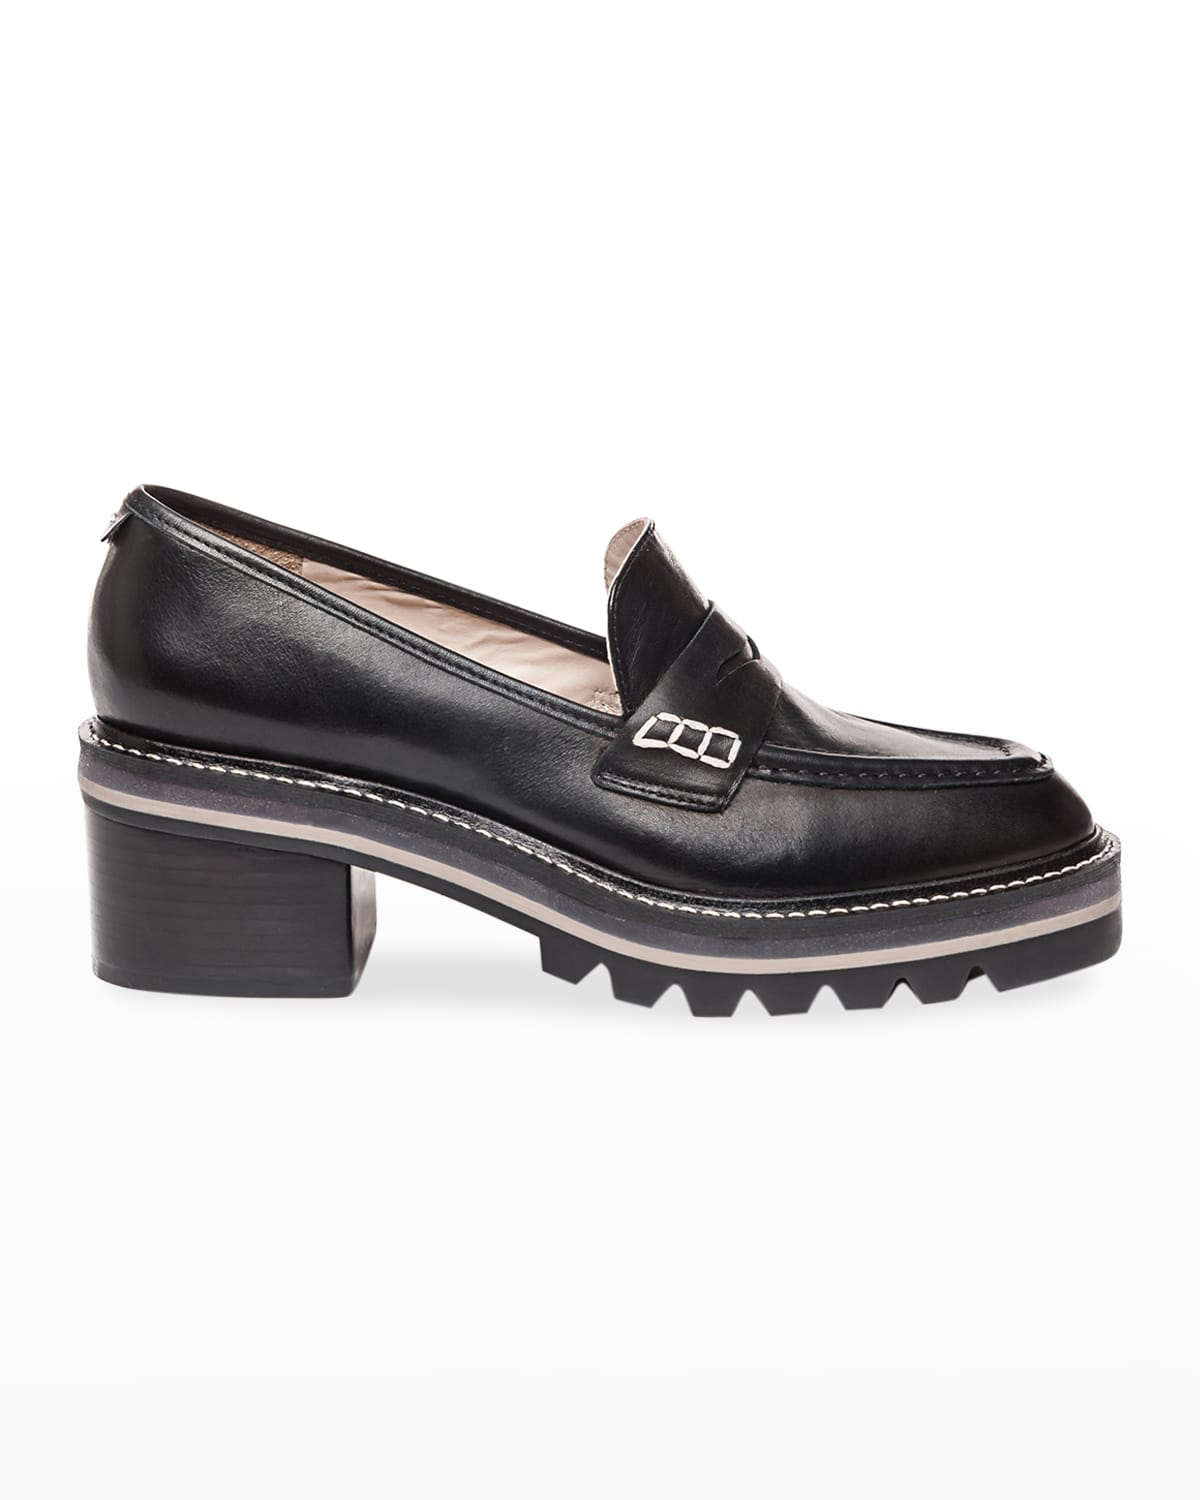 Selma Tricolor Penny Loafers